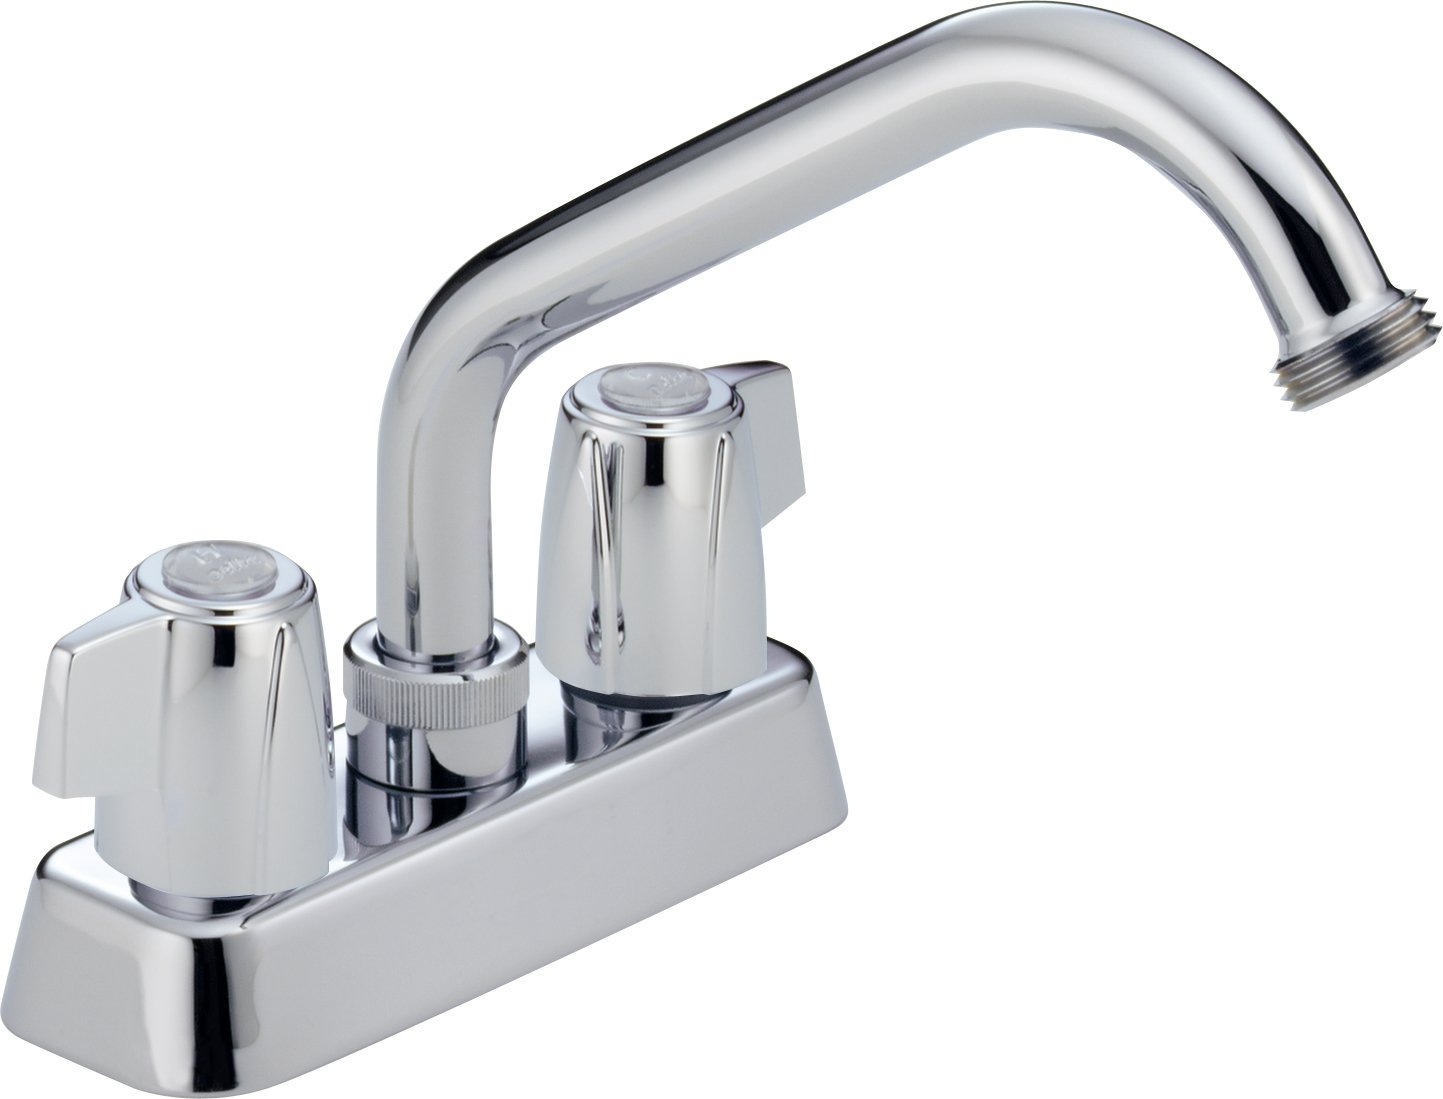 Peerless P299232 Classic Two Handle Laundry Faucet, Chrome - Touch ...